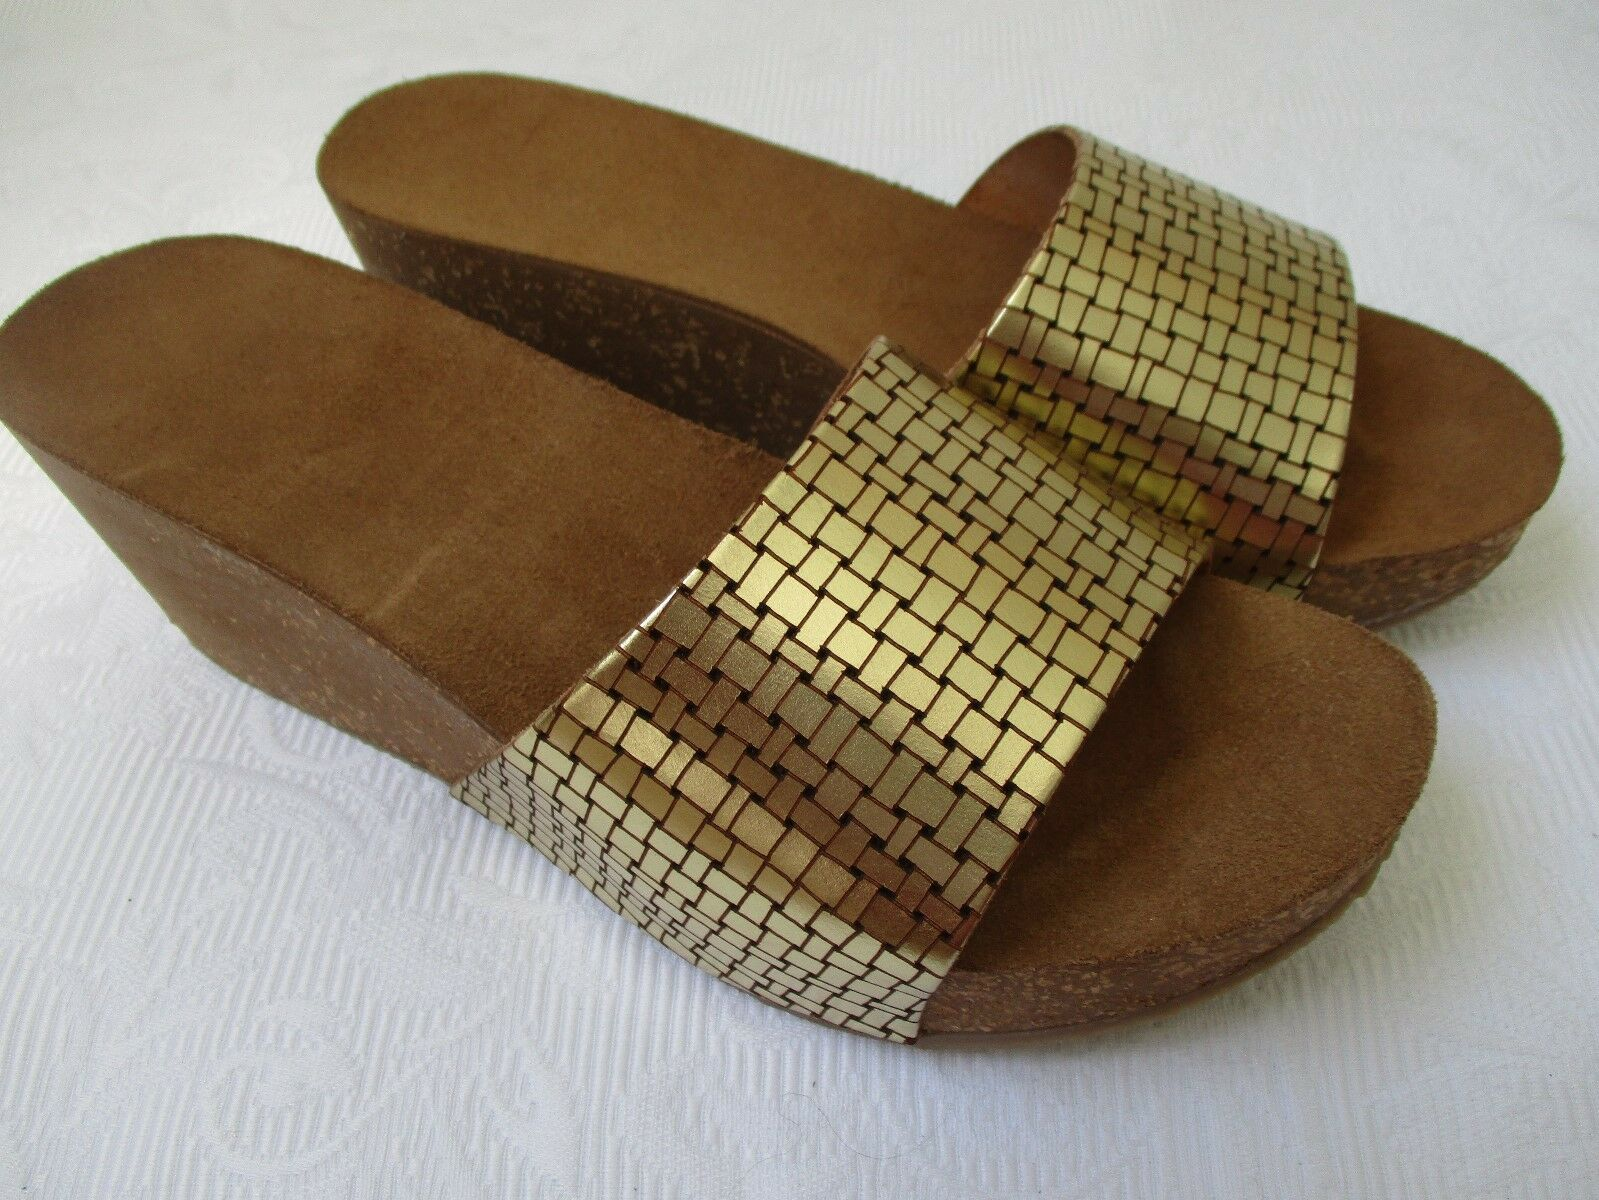 KENZIA PLATINO CORK SLIDES LEATHER SANDALS SIZE 39 - NEW